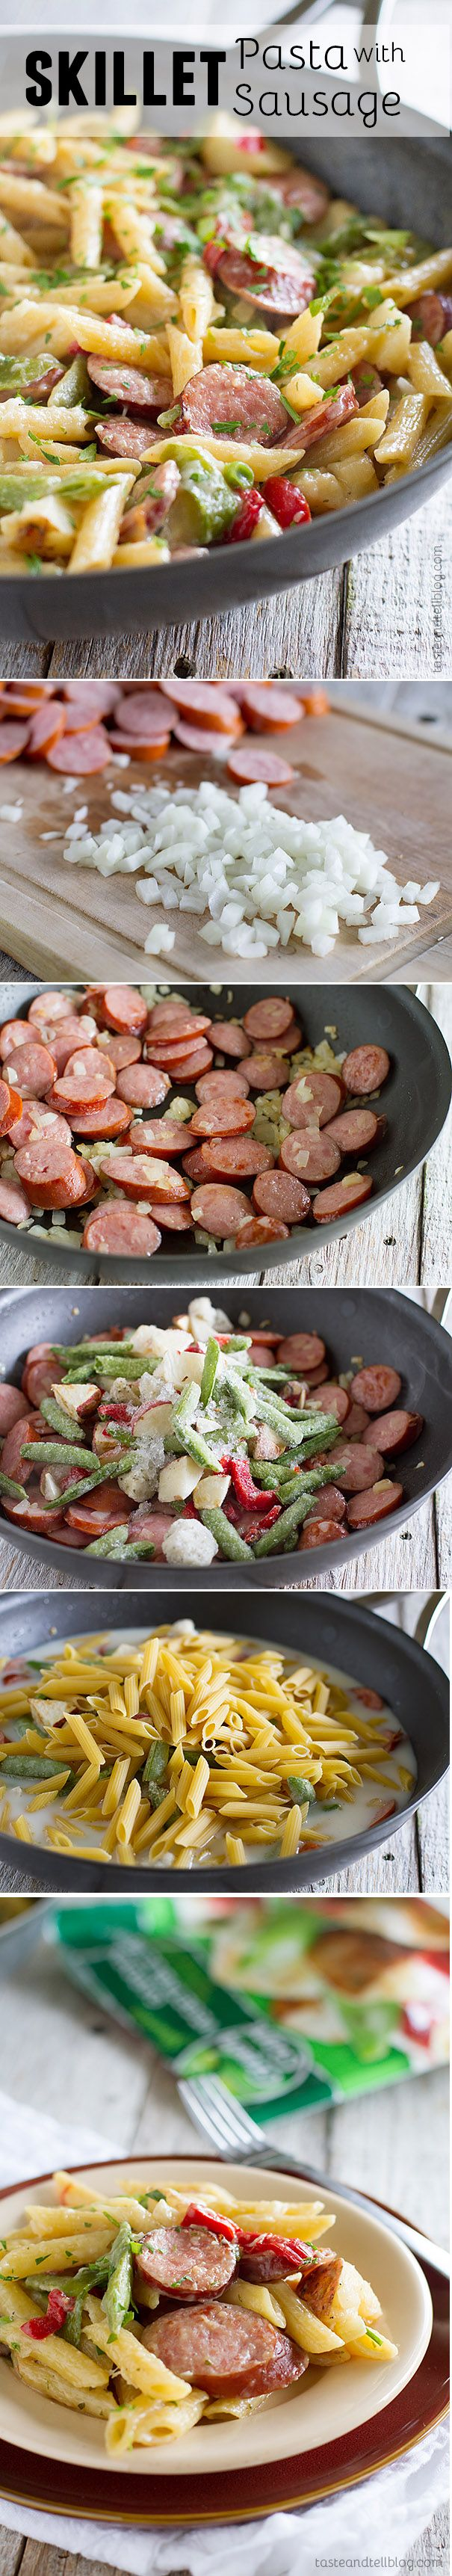 Skillet Pasta with Sausage - this one pan meal is ready in no time at all and your family will love it!